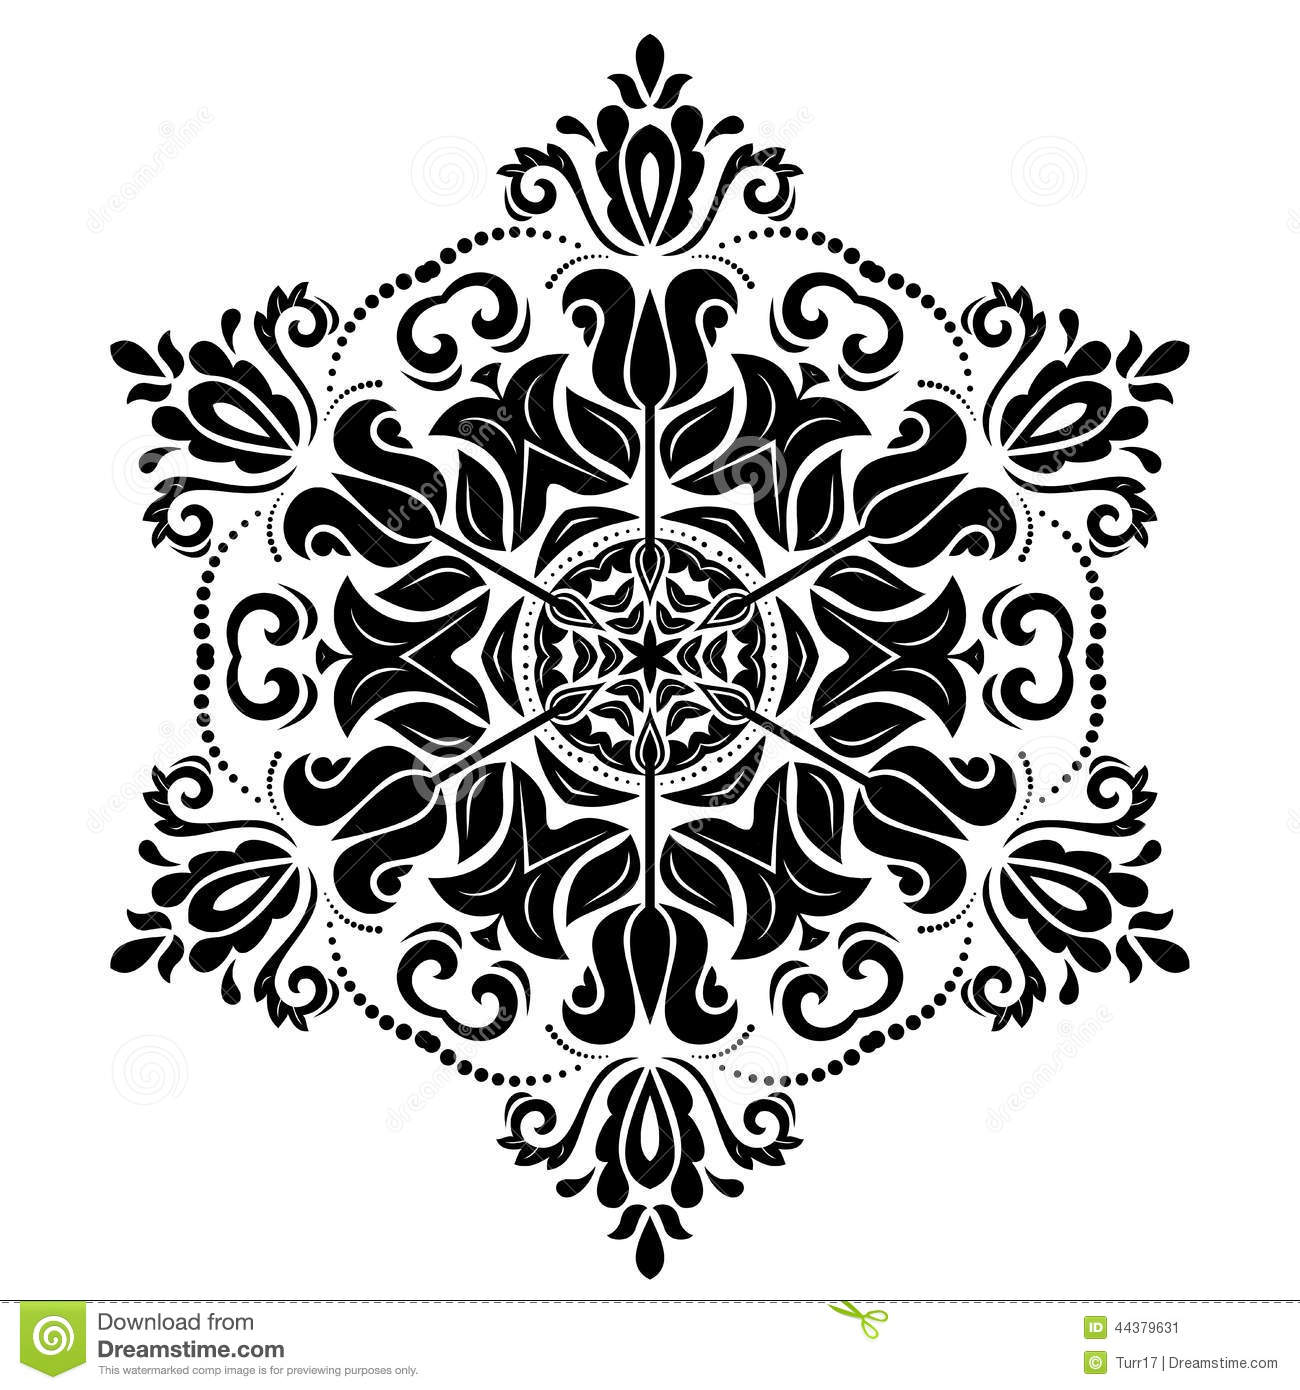 With damask arabesque and floral elements abstract background